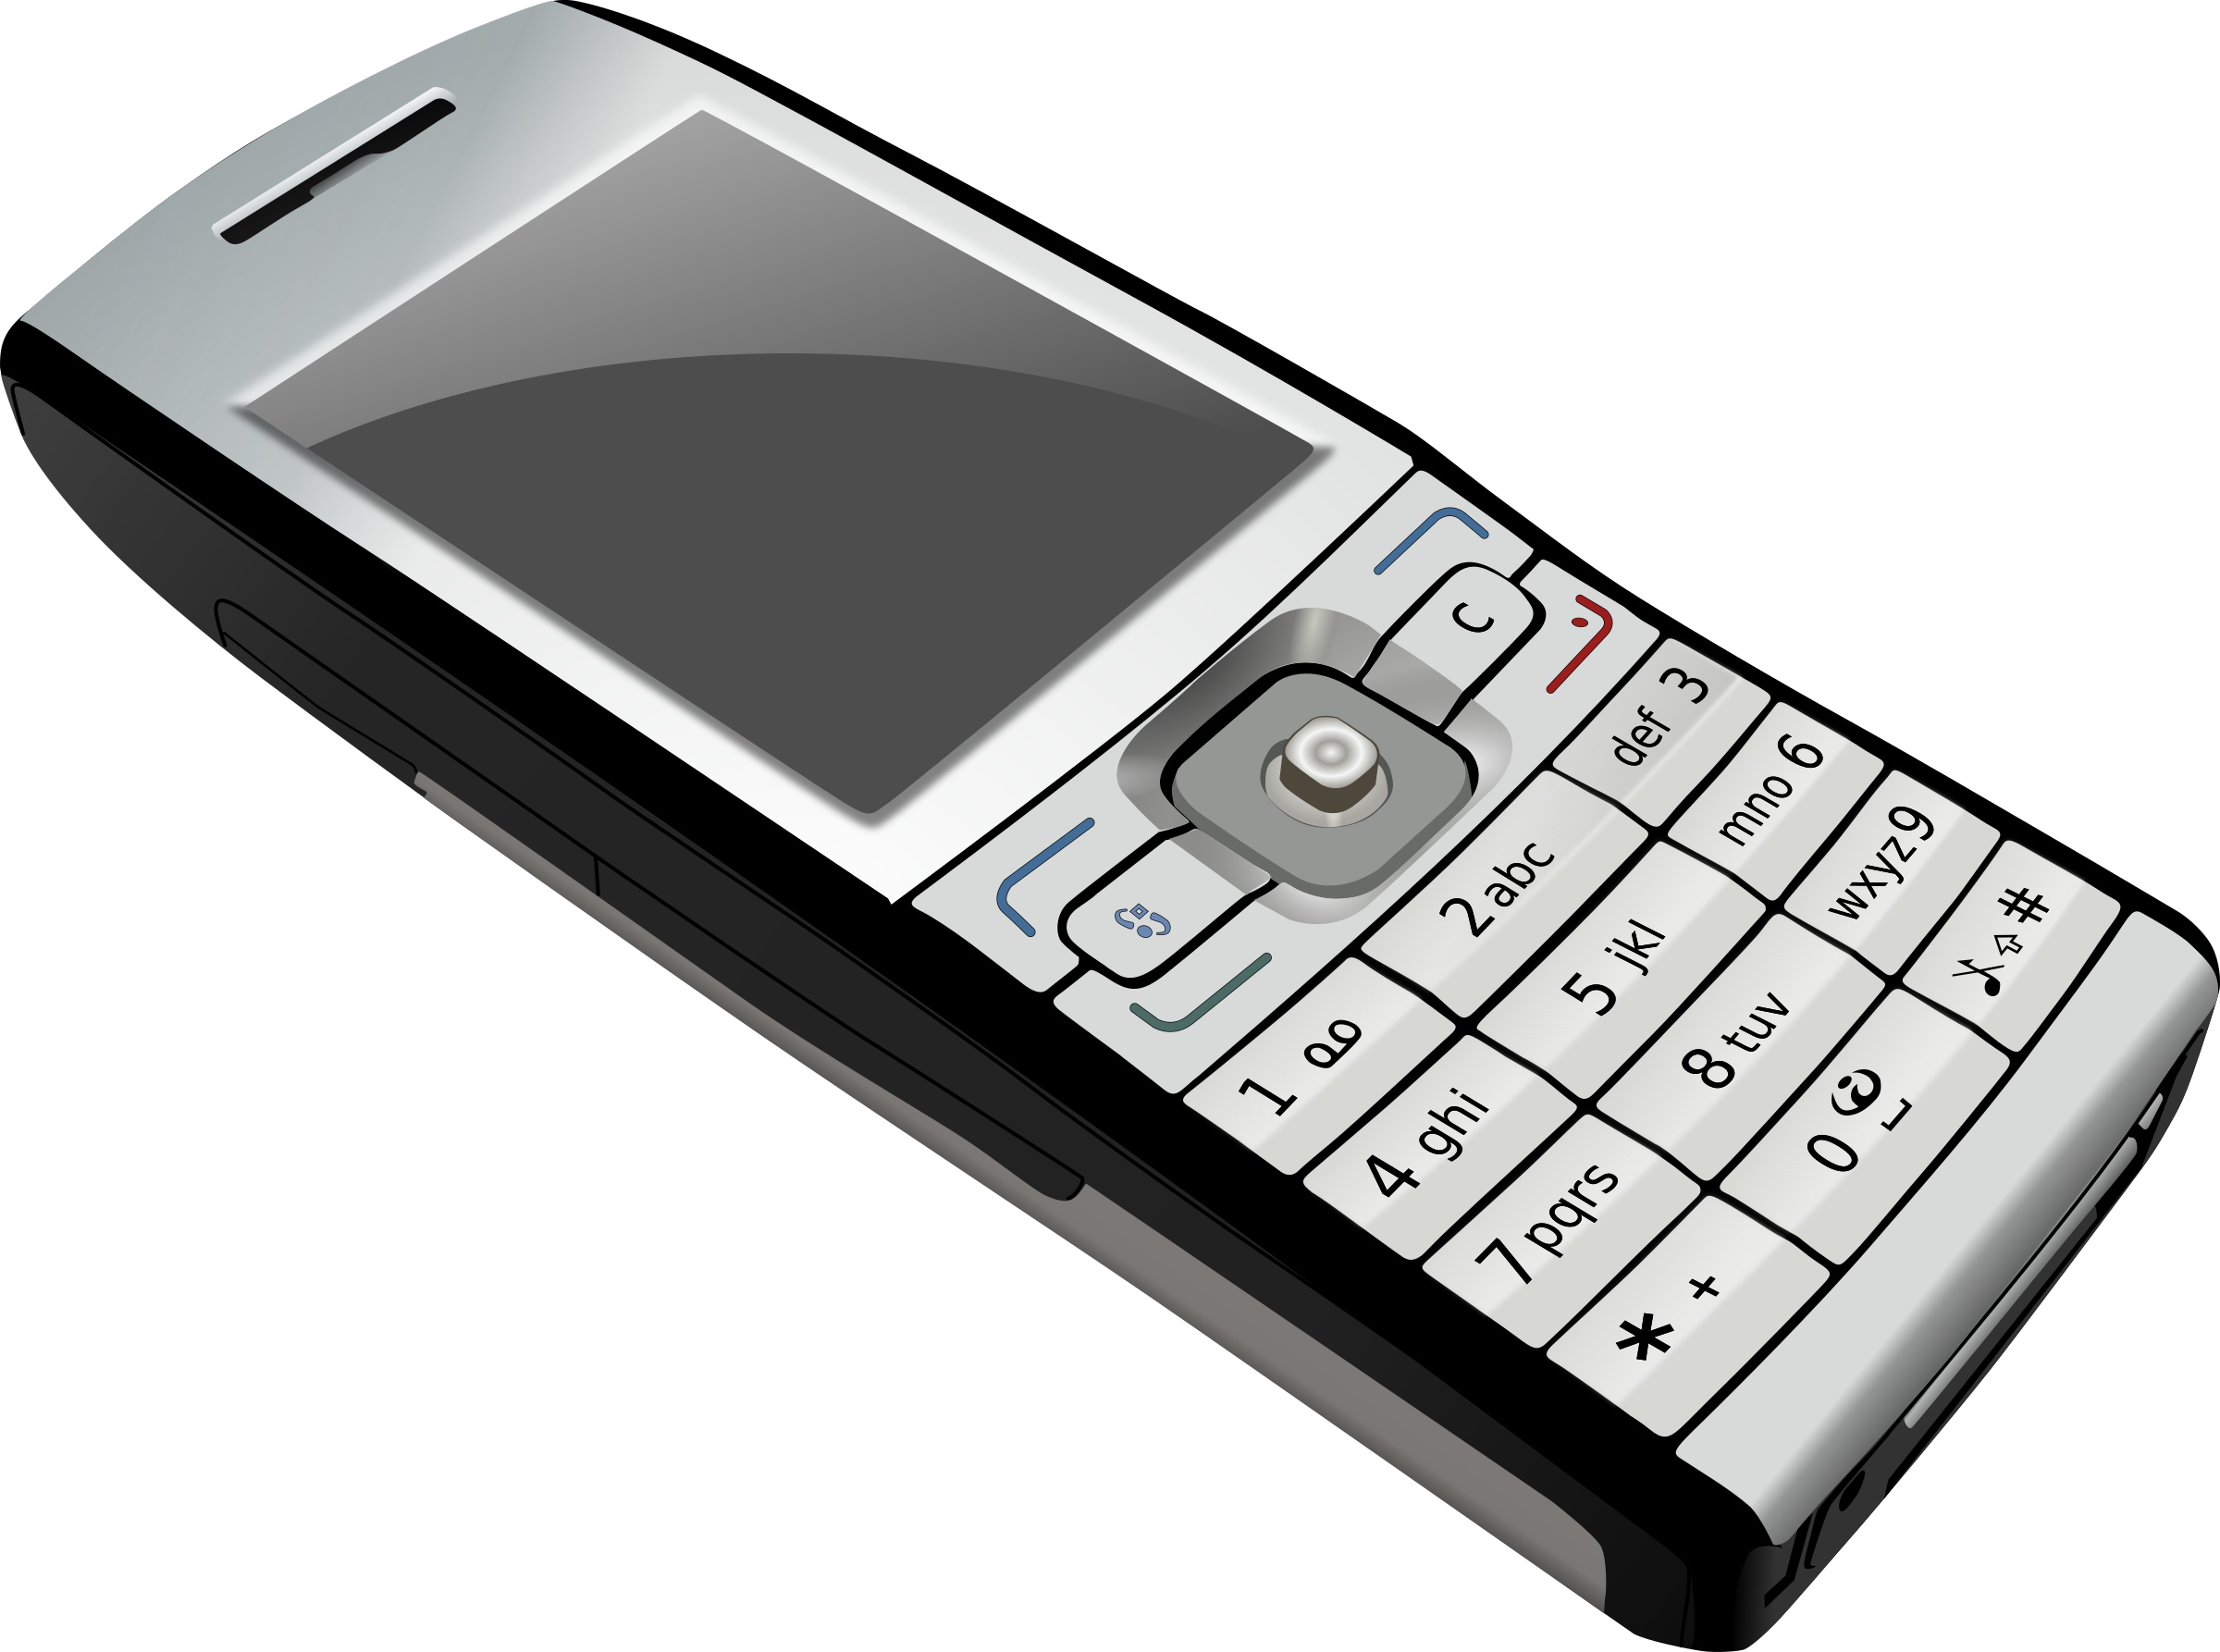 Phone big image png. Electronics clipart modern technology gadget